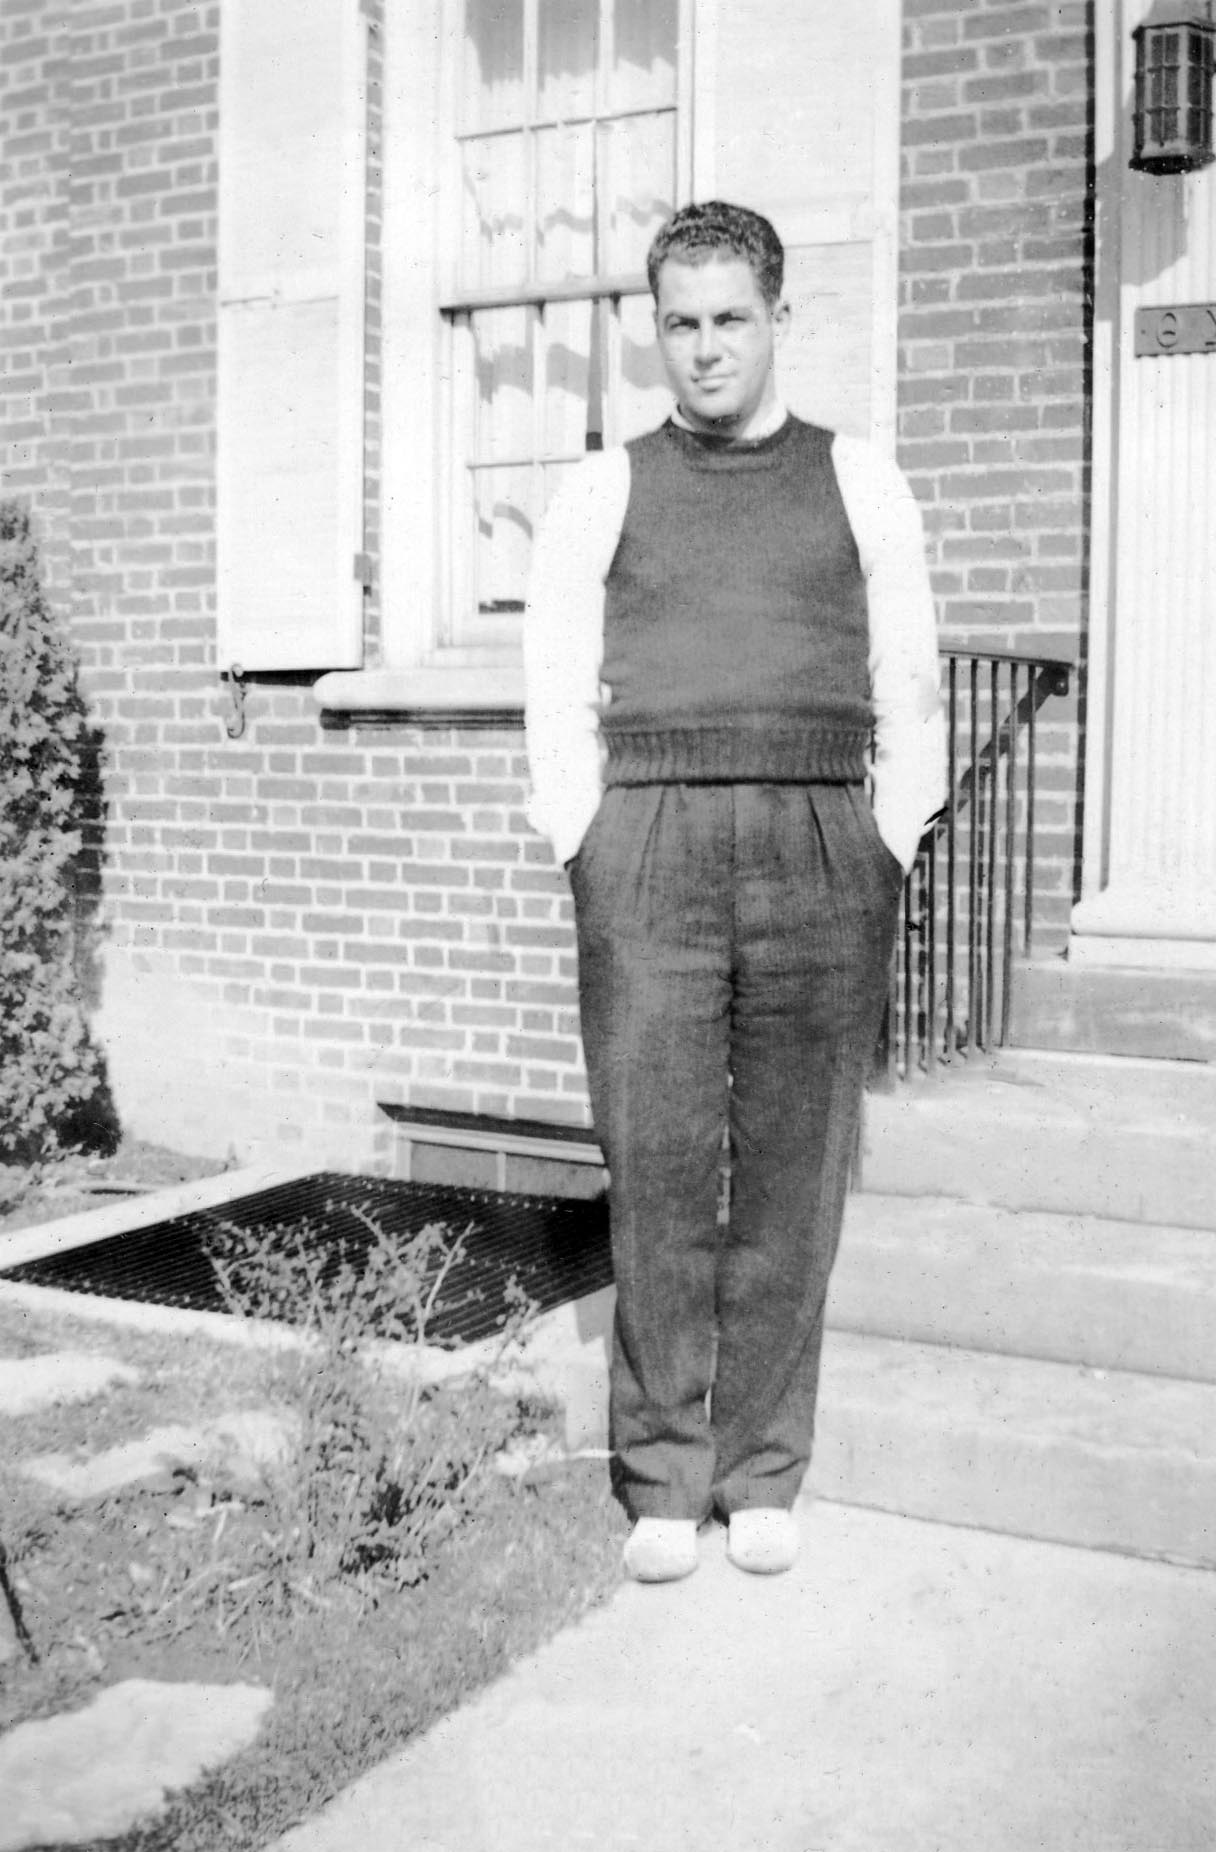 Henry T. Dodge, Jr. 1937 - Yonkers, NY